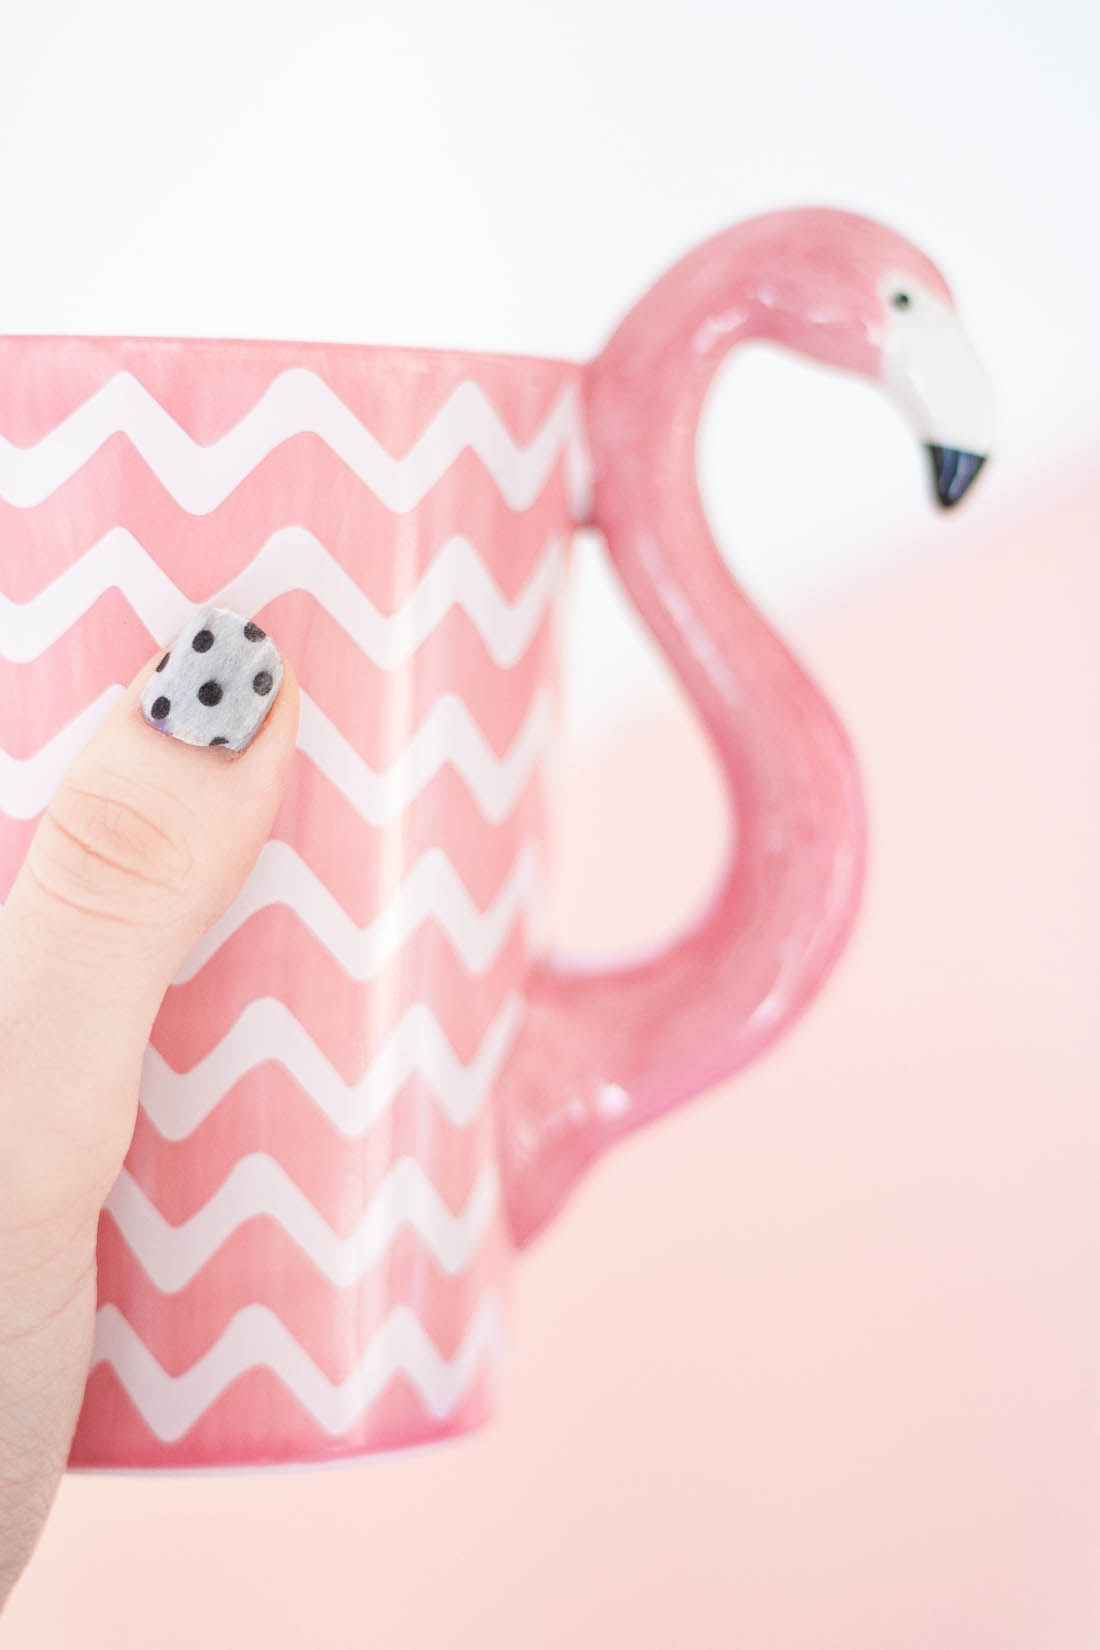 Diy washi tape nails set2